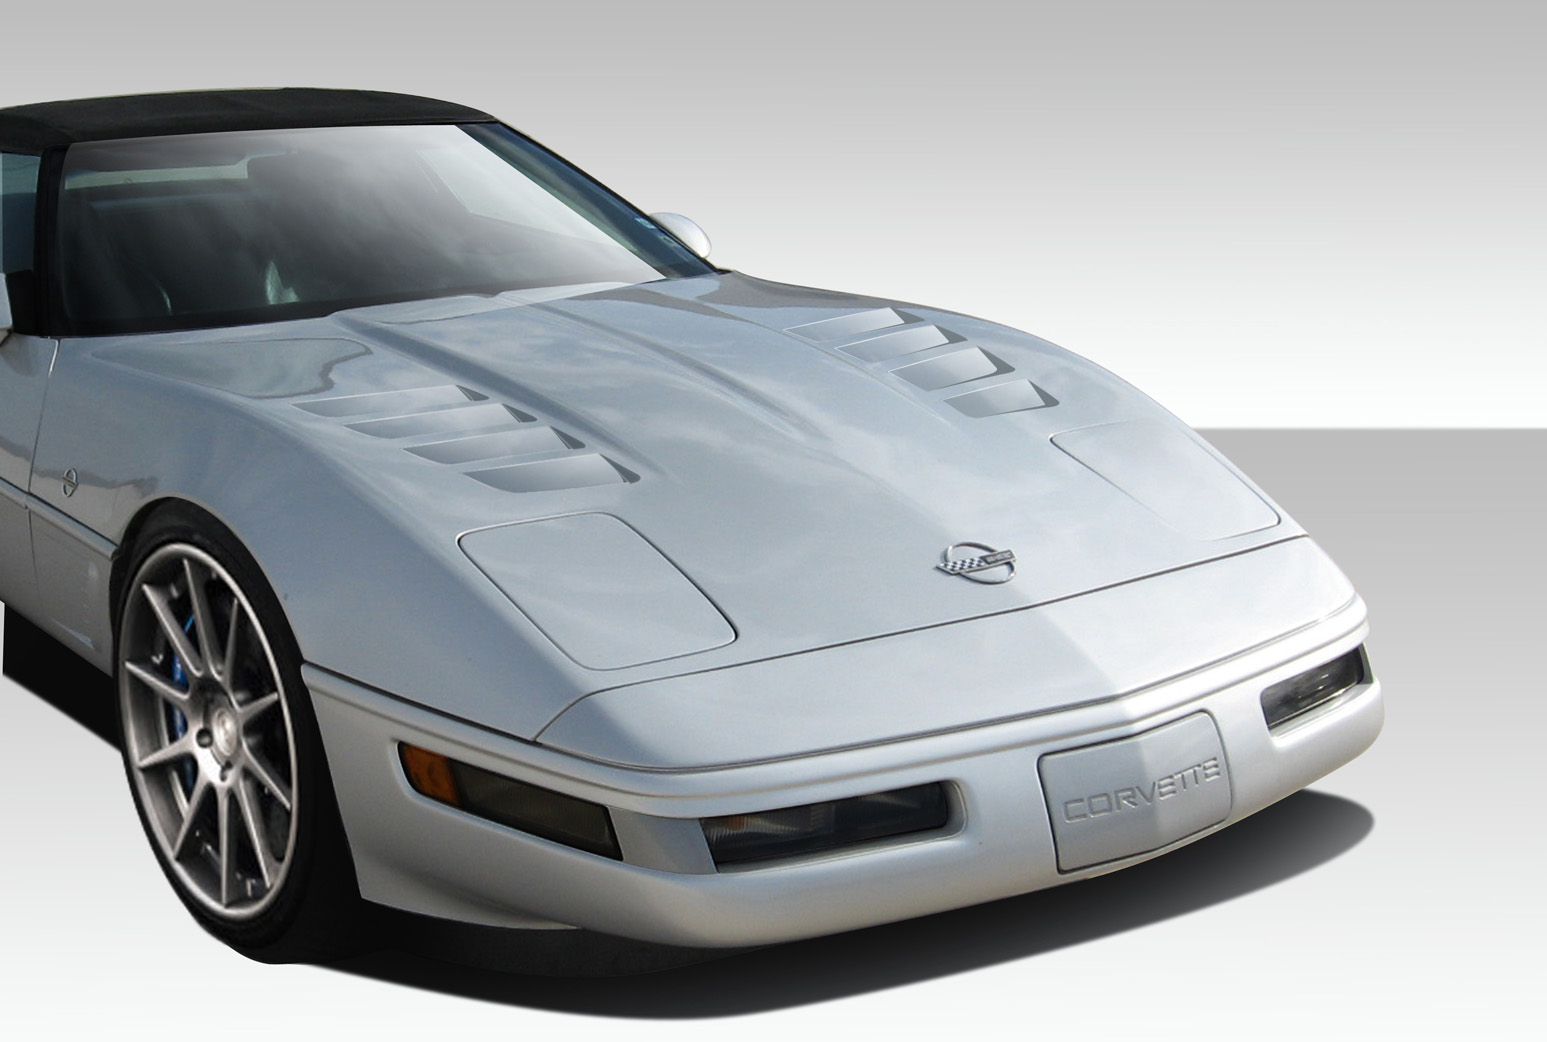 Ford Edge Dimensions >> Welcome to Extreme Dimensions :: Inventory Item :: 1985-1996 Chevrolet Corvette C4 Duraflex GT ...